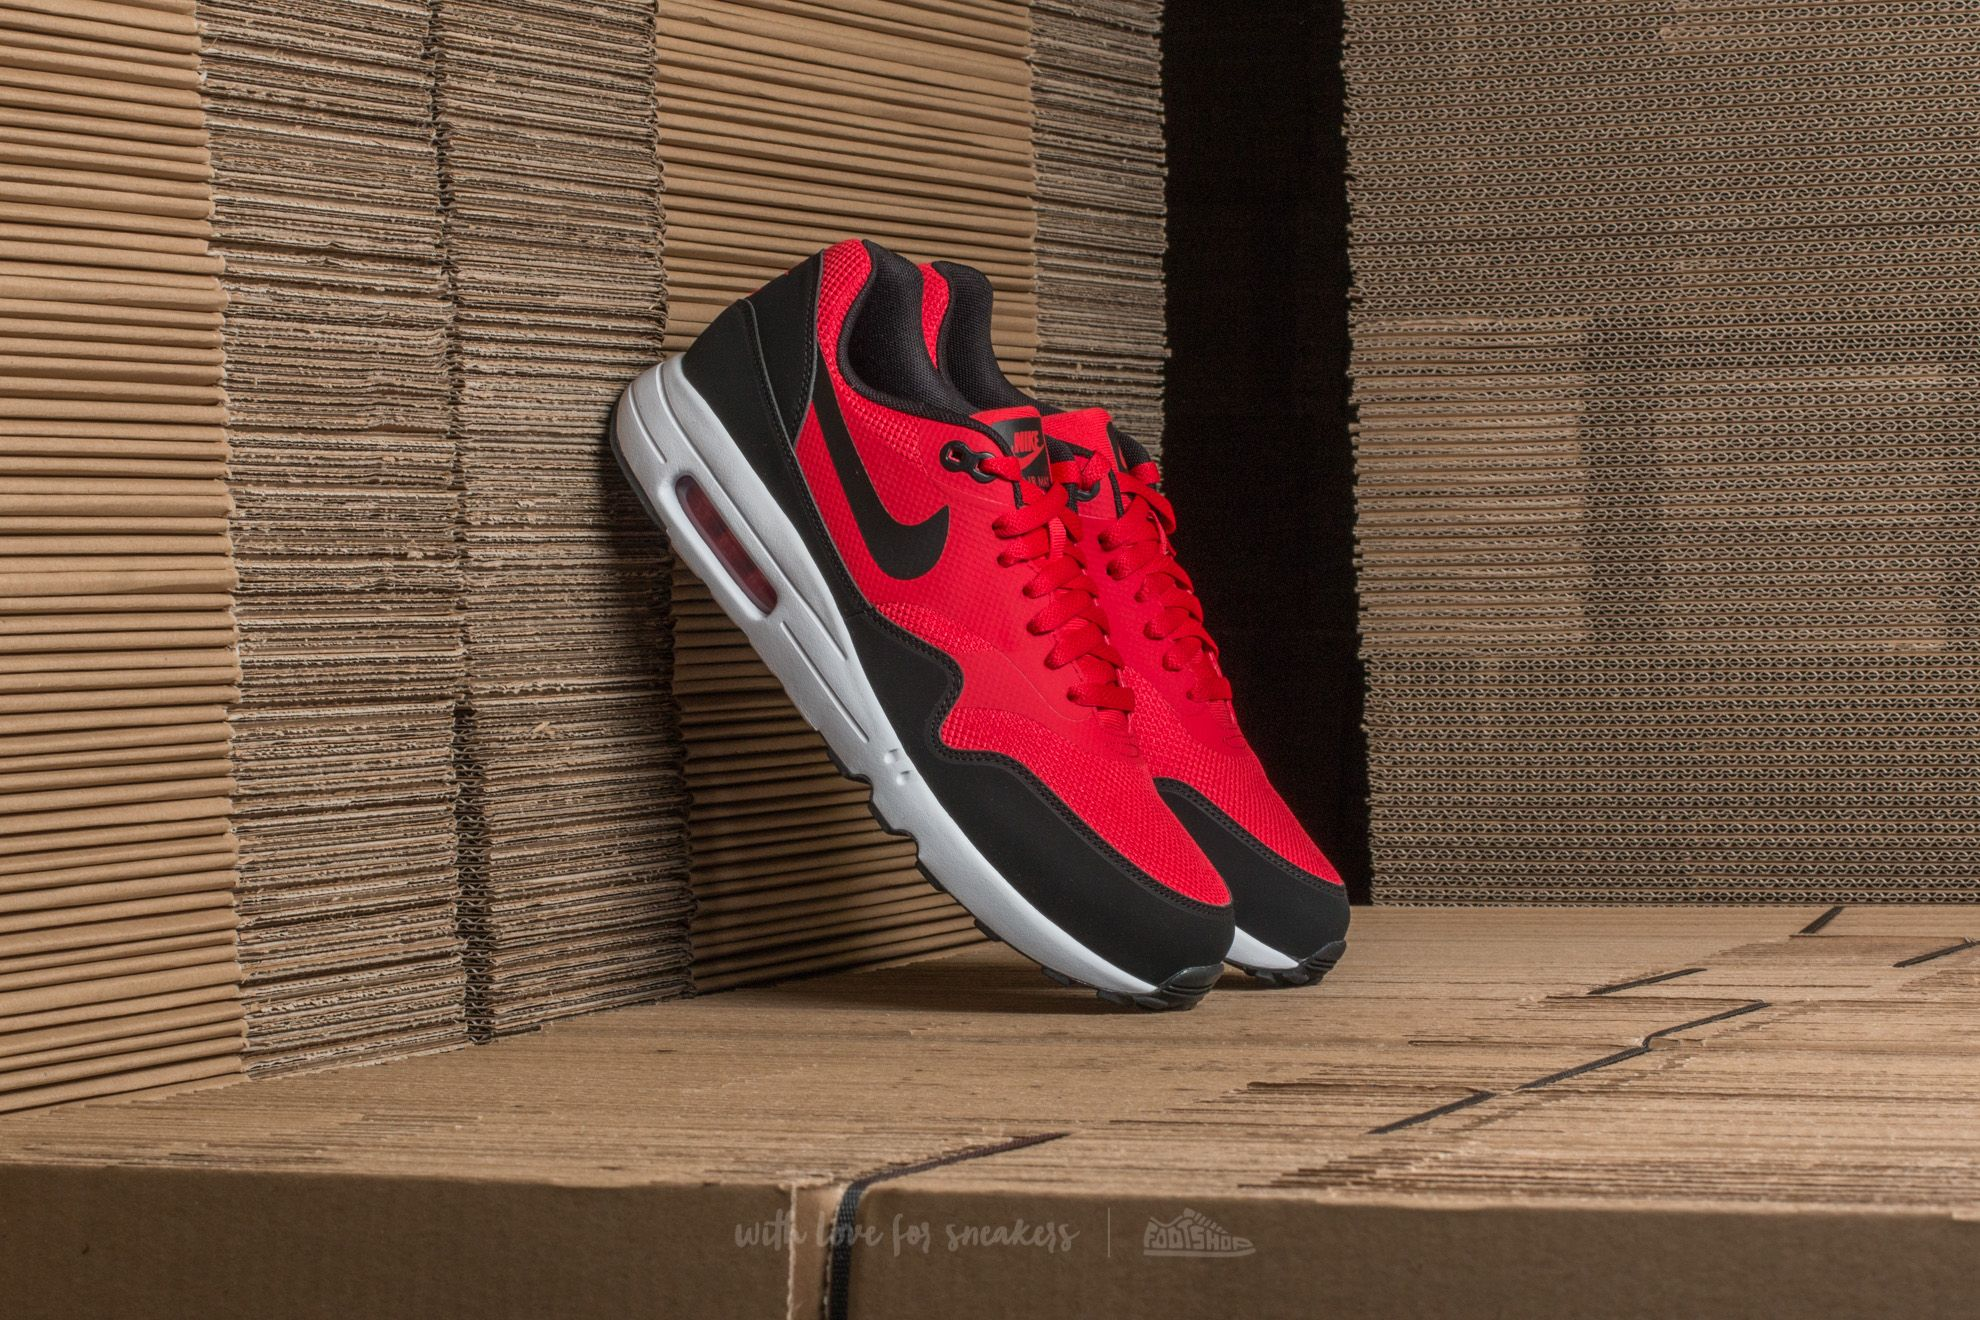 951859c45ee Nike Air Max 1 Ultra 2.0 Essential University Red/ Black-White ...